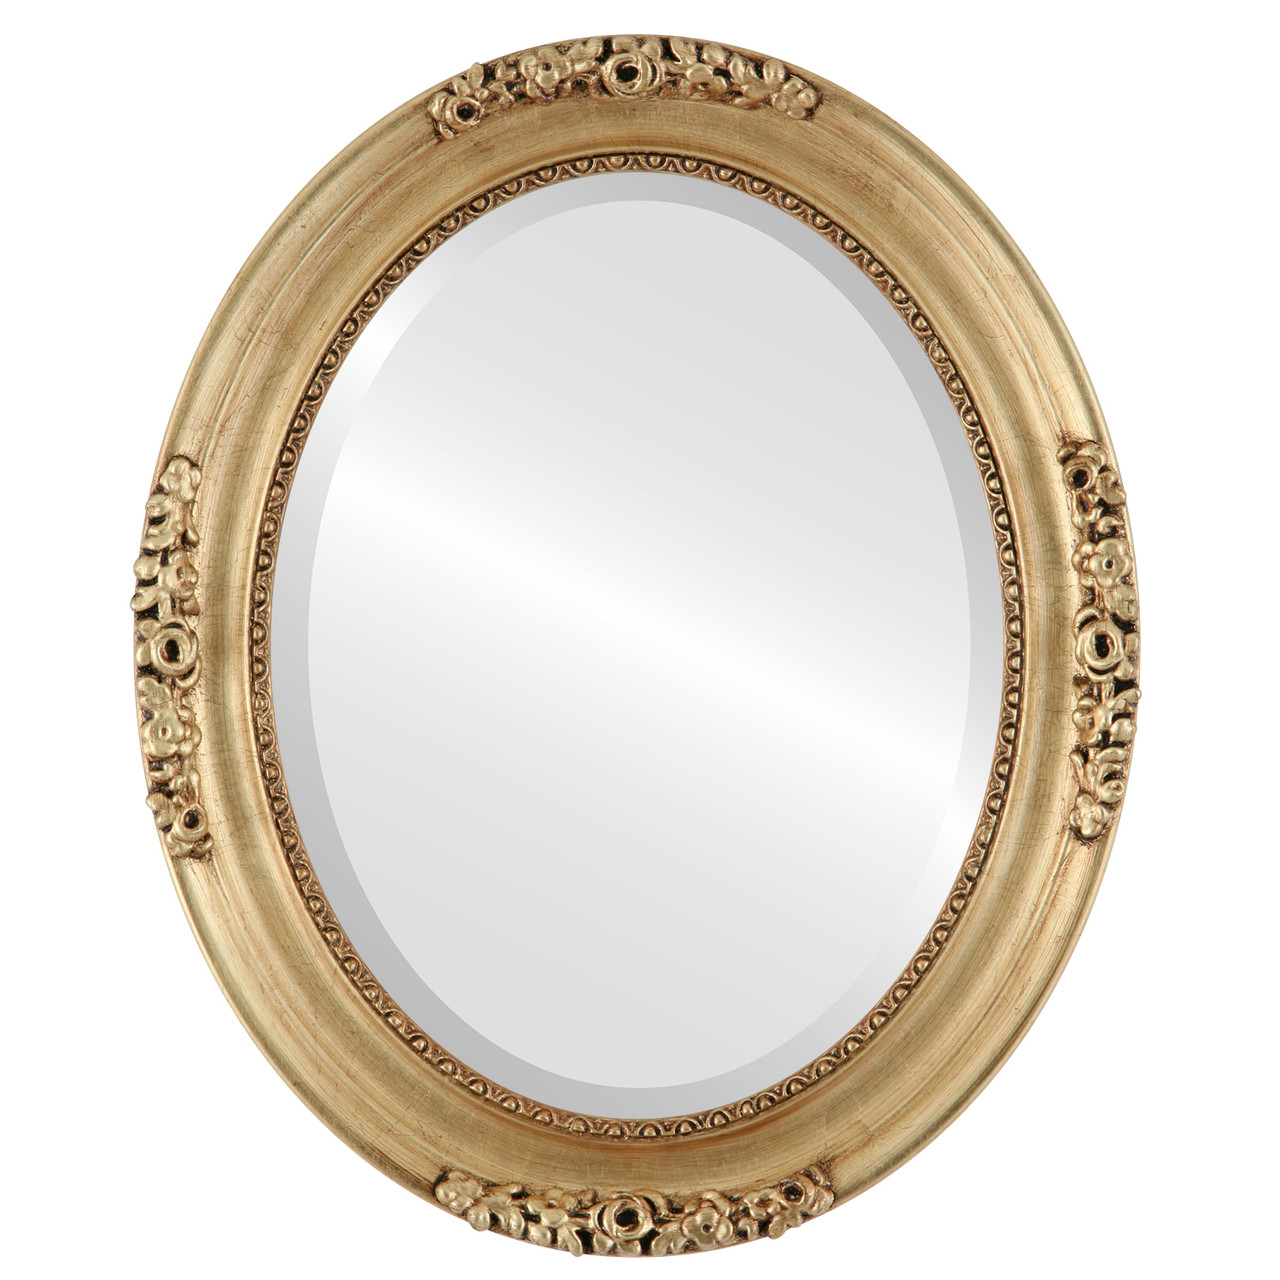 Vintage Gold Oval Mirrors From 177 Free Shipping